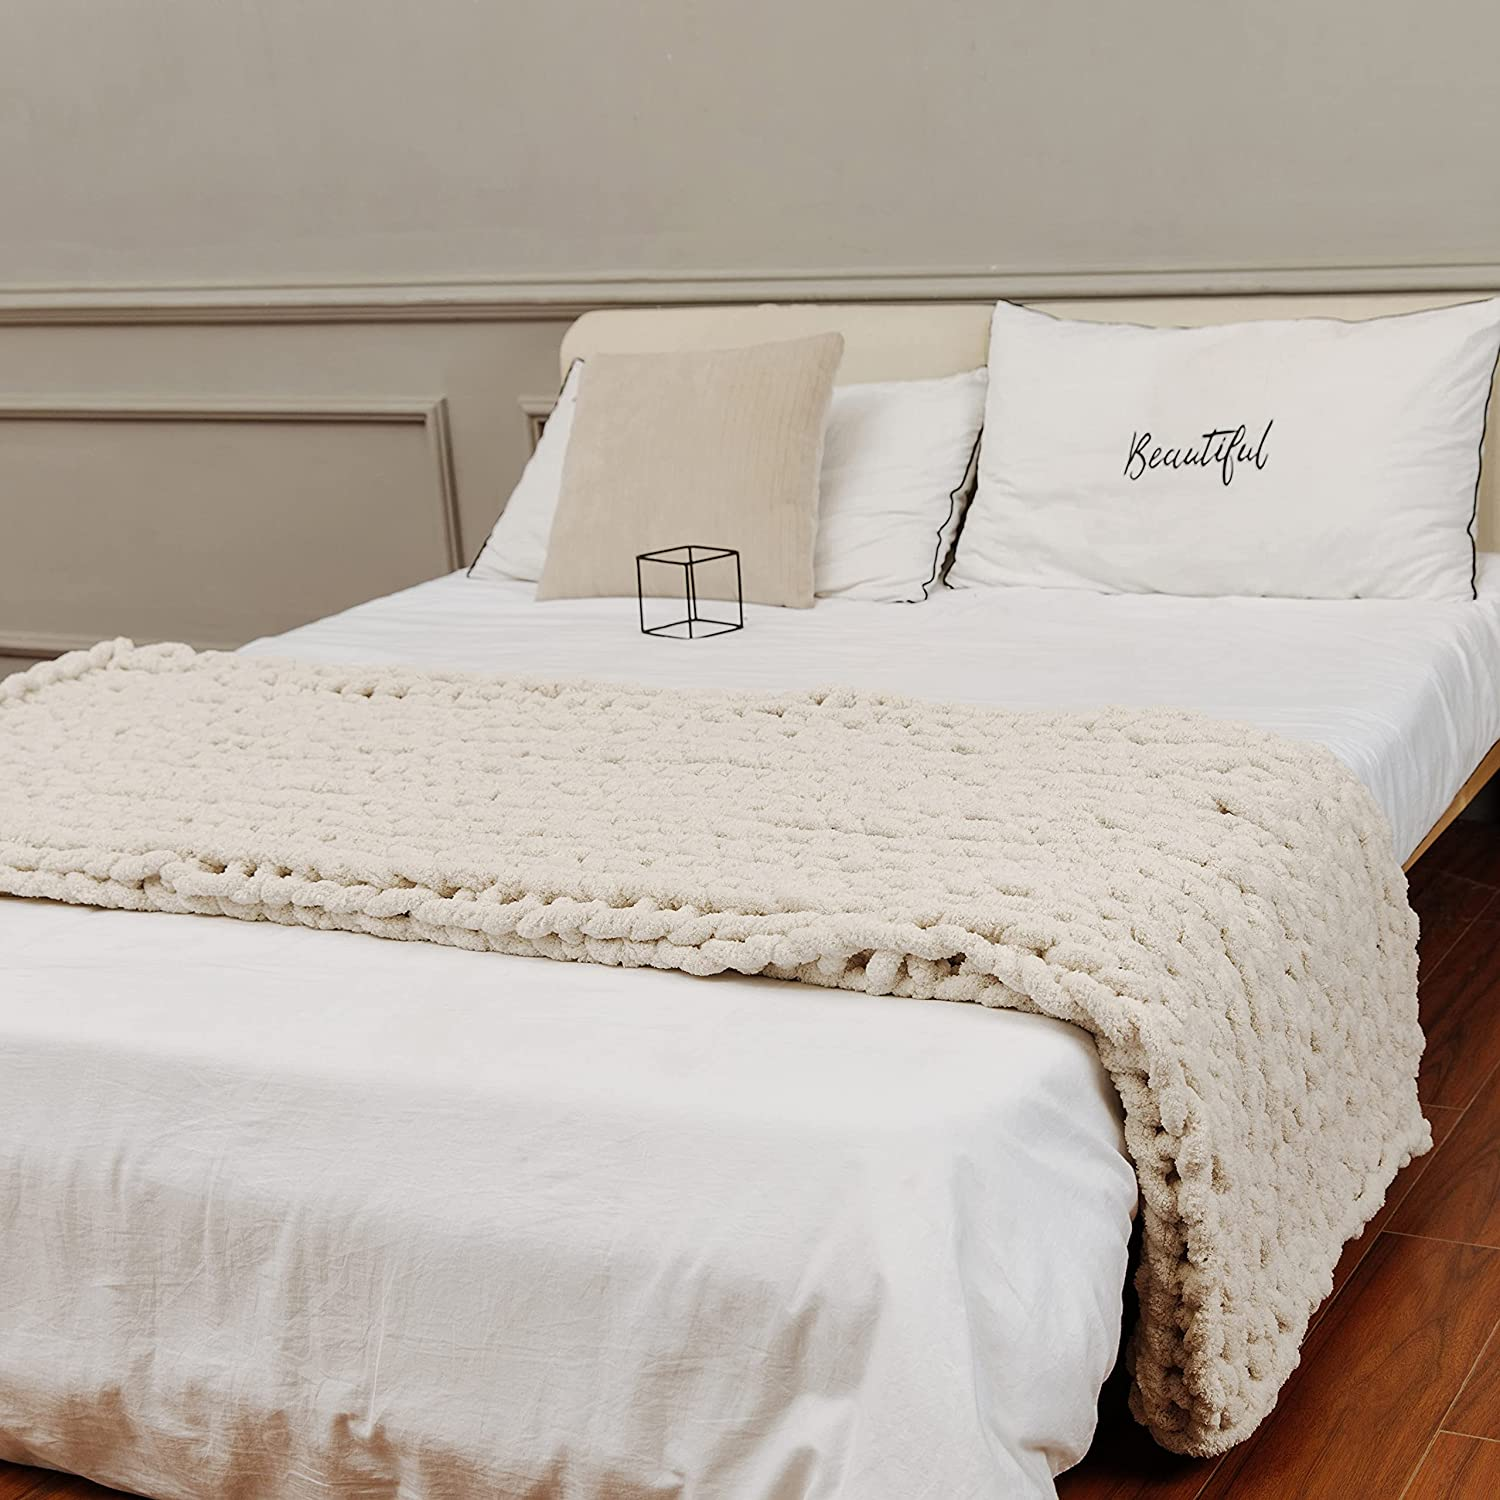 Department store clootess Chenille Chunky Knit online shop Blanket Dec Beautiful Throw Home -